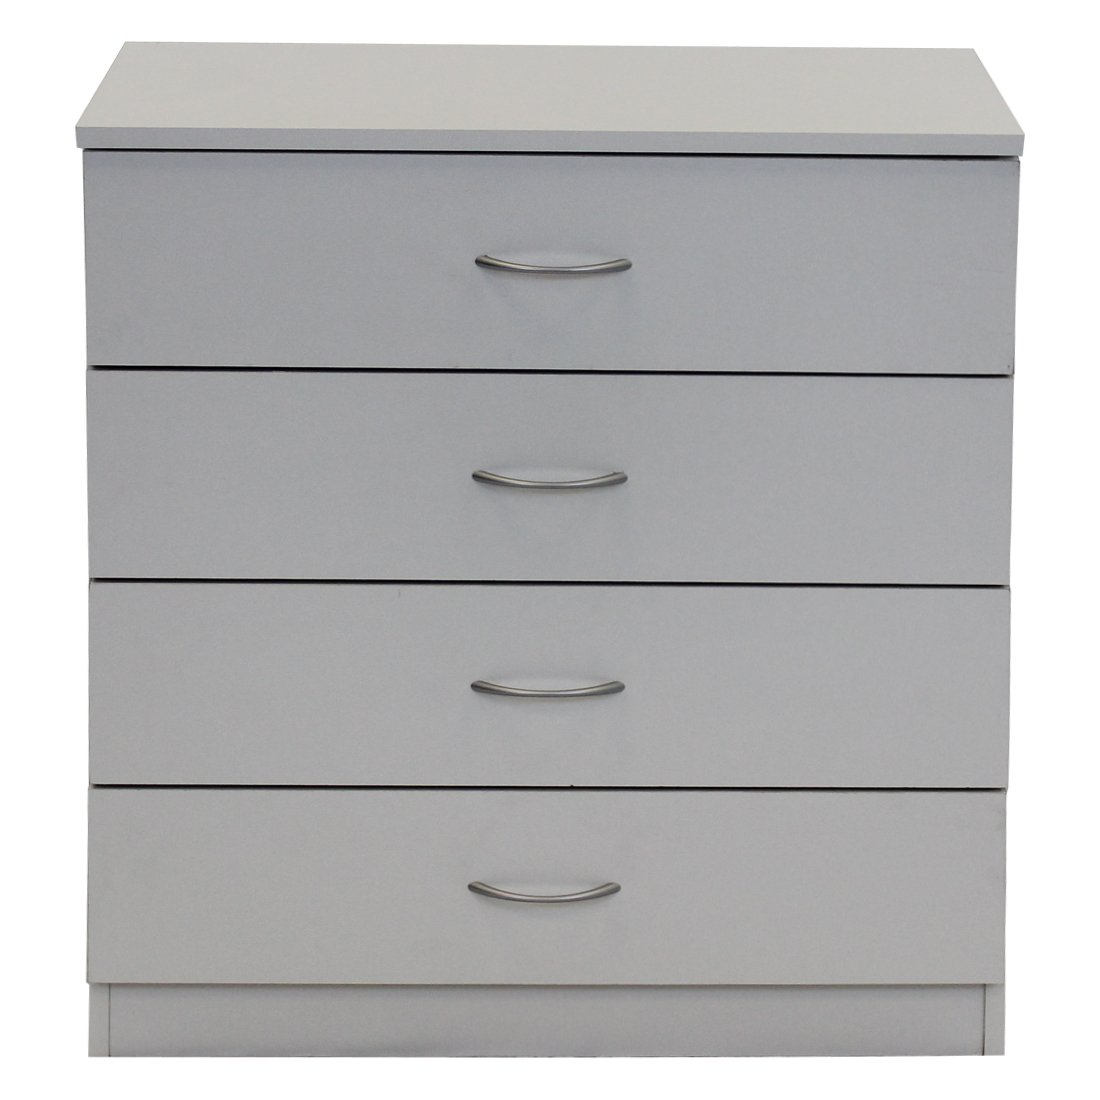 Devoted2Home Boldon Budget Bedroom Furniture - 4 Drawer Chest Drawers - White